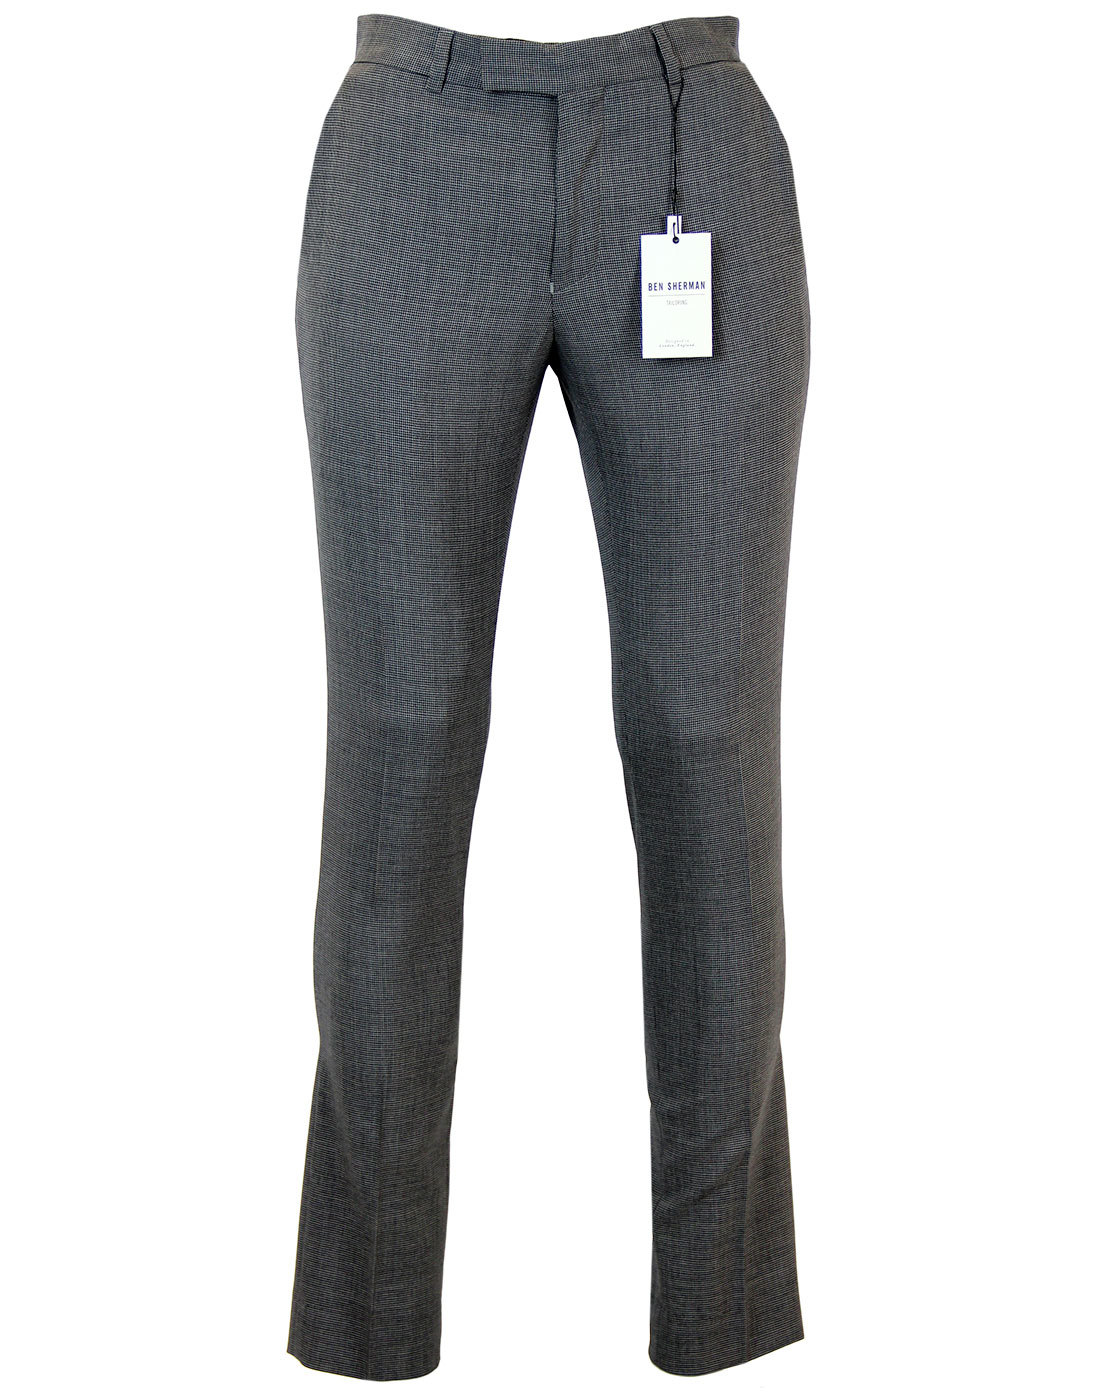 BEN SHERMAN 1960s Mod Micro Dogtooth Slim Trousers